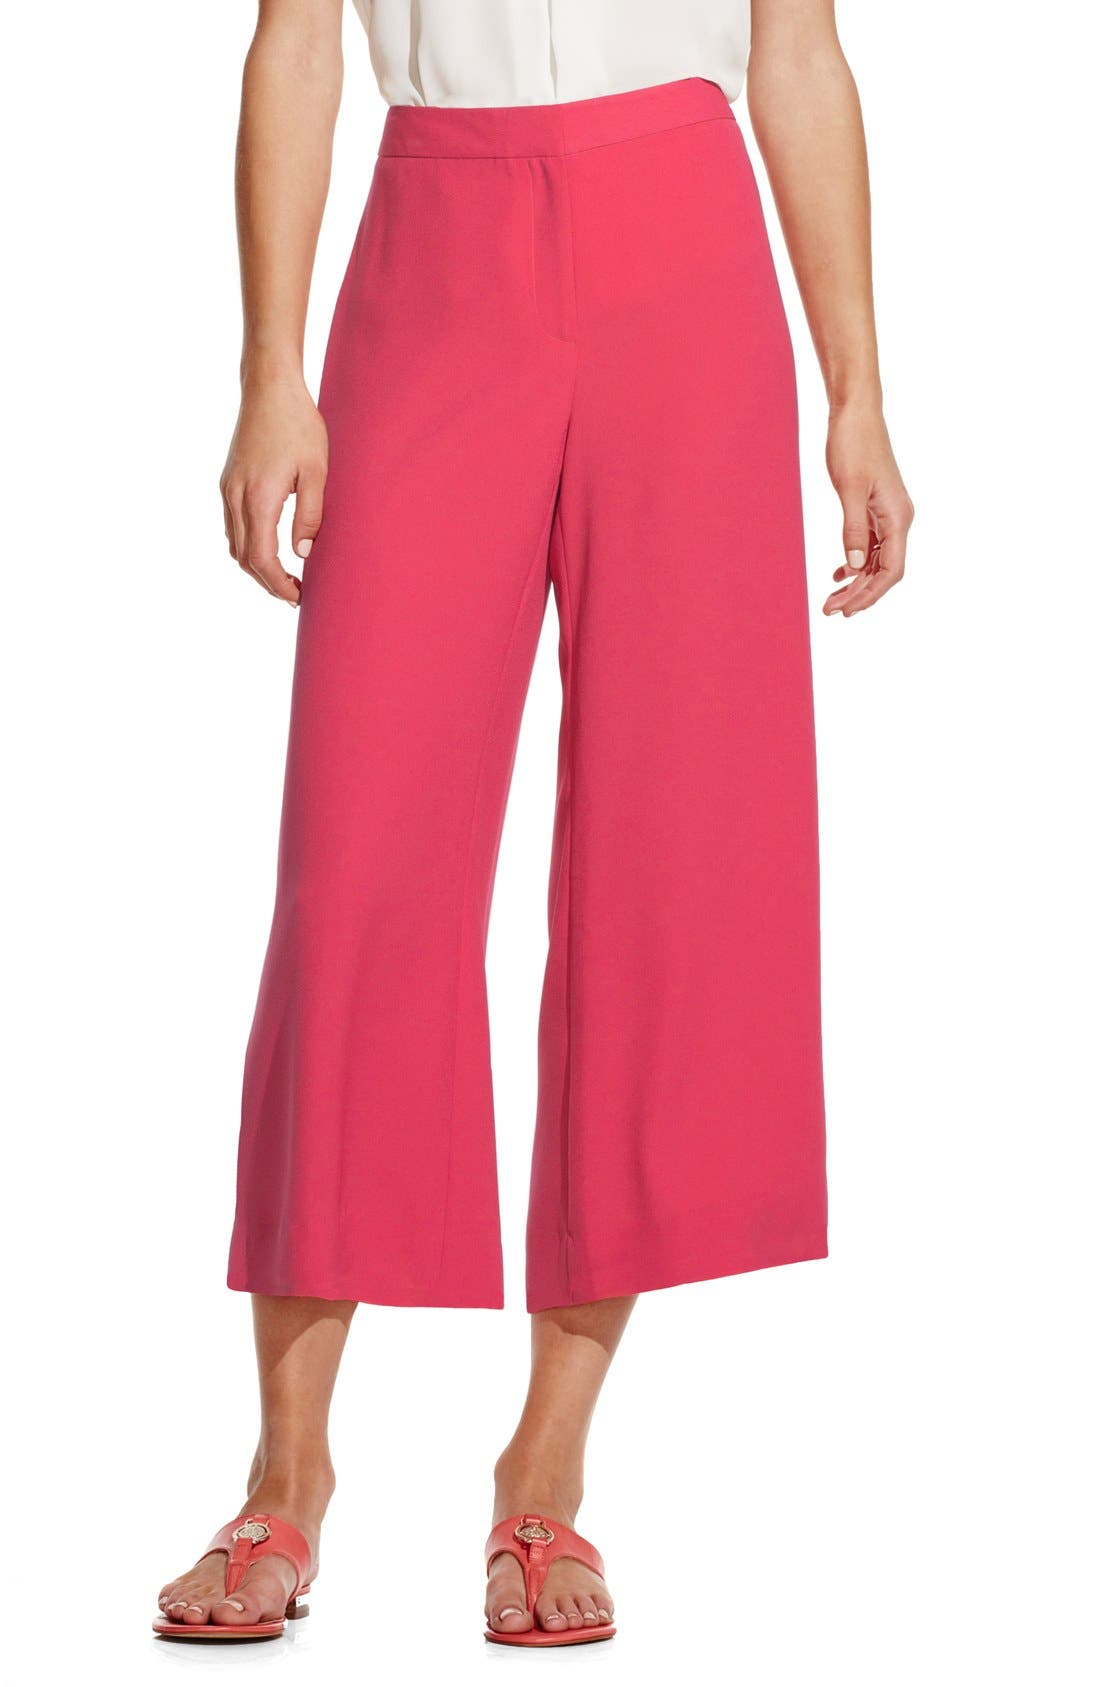 Alternate Image 1 Selected - Vince Camuto Zip Front Culottes